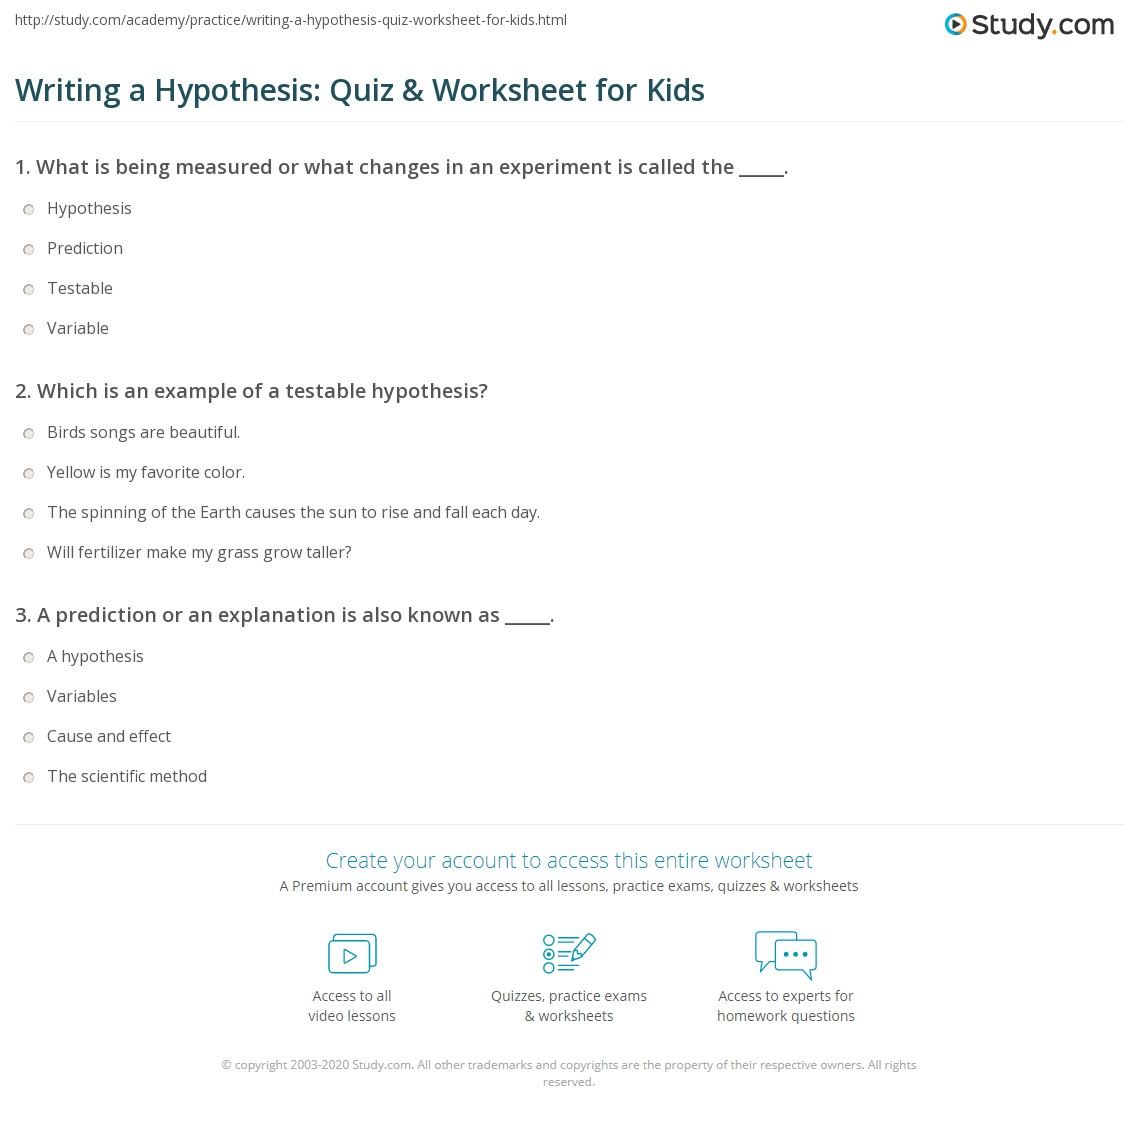 writing a hypothesis worksheet kidz activities. Black Bedroom Furniture Sets. Home Design Ideas